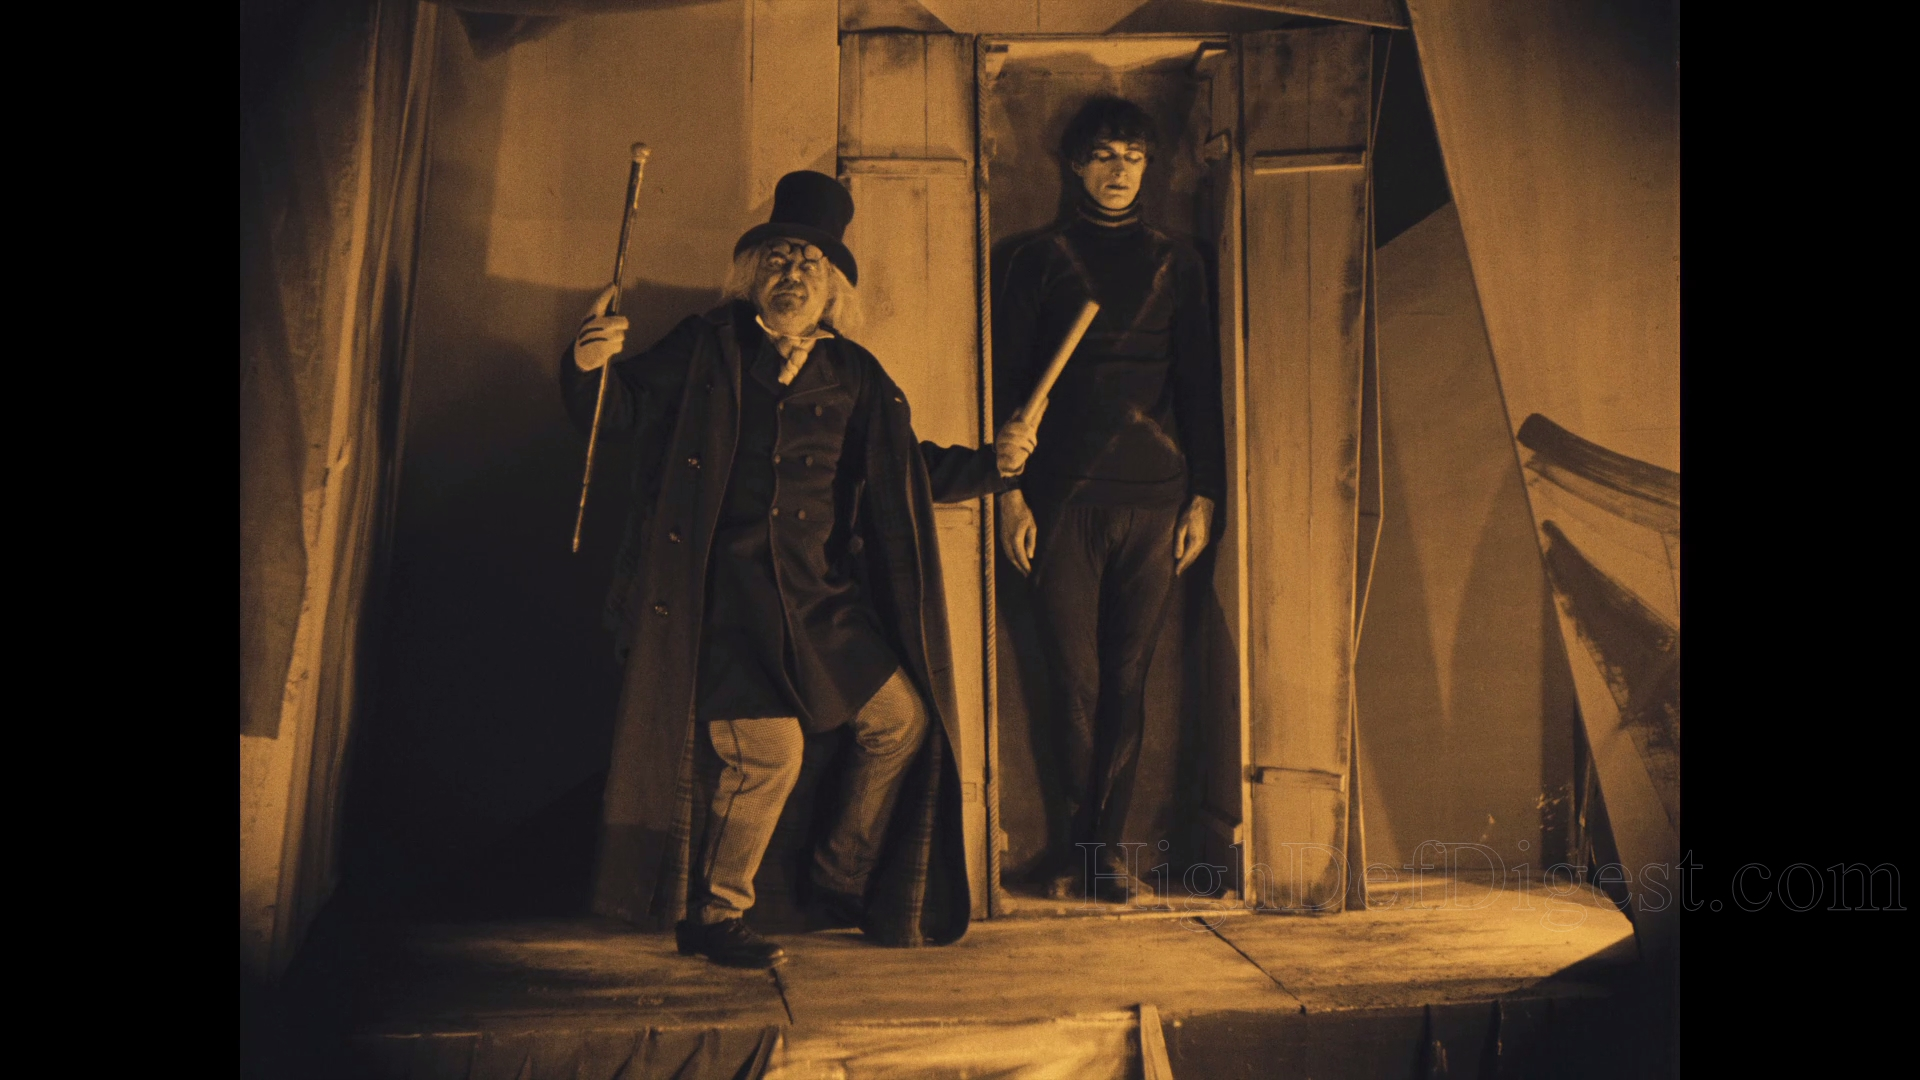 an analysis of the movie the cabinet of dr caligari The cabinet of dr caligari: the cabinet of dr caligari, german silent horror film, released in 1920, that is widely considered the first great work in the genre it also was the first film.